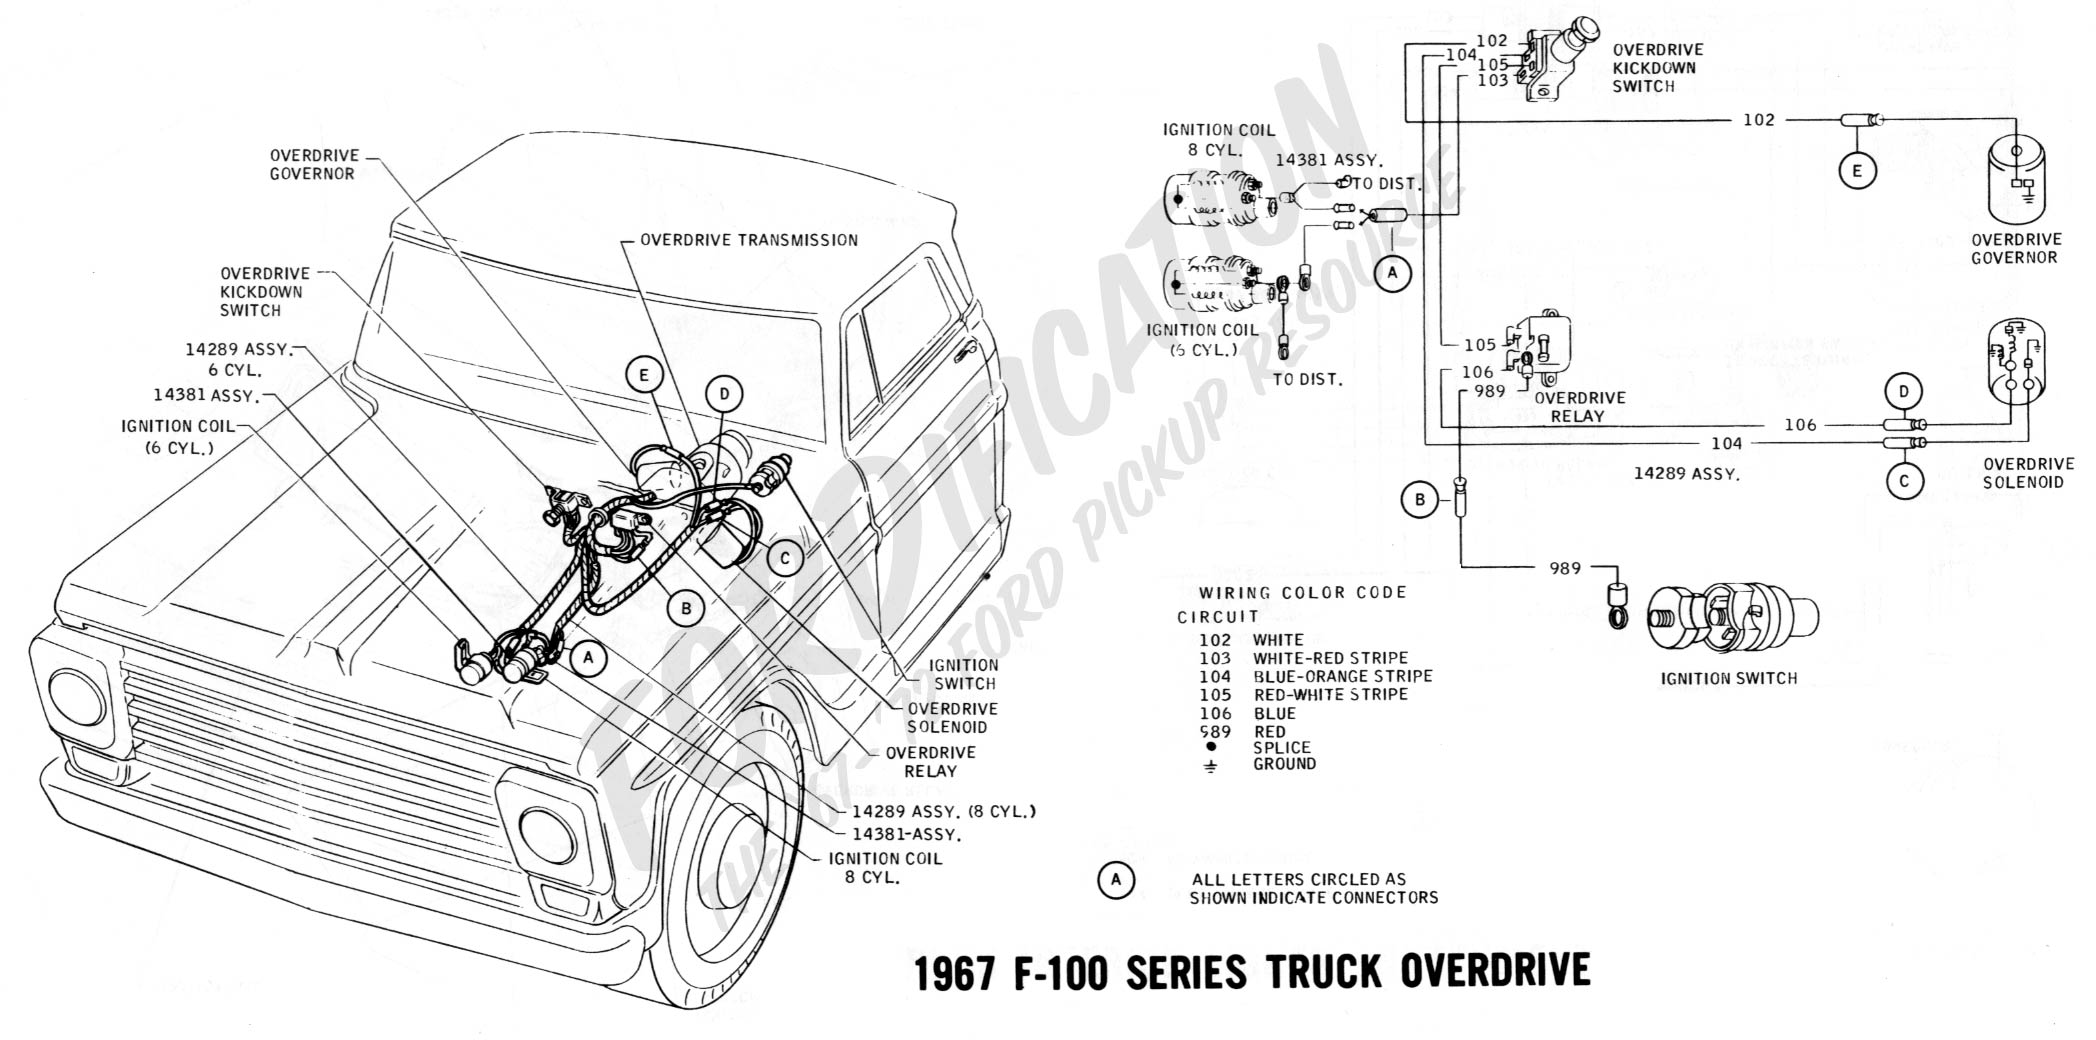 67 fuse panel wiring diagram chevy nova